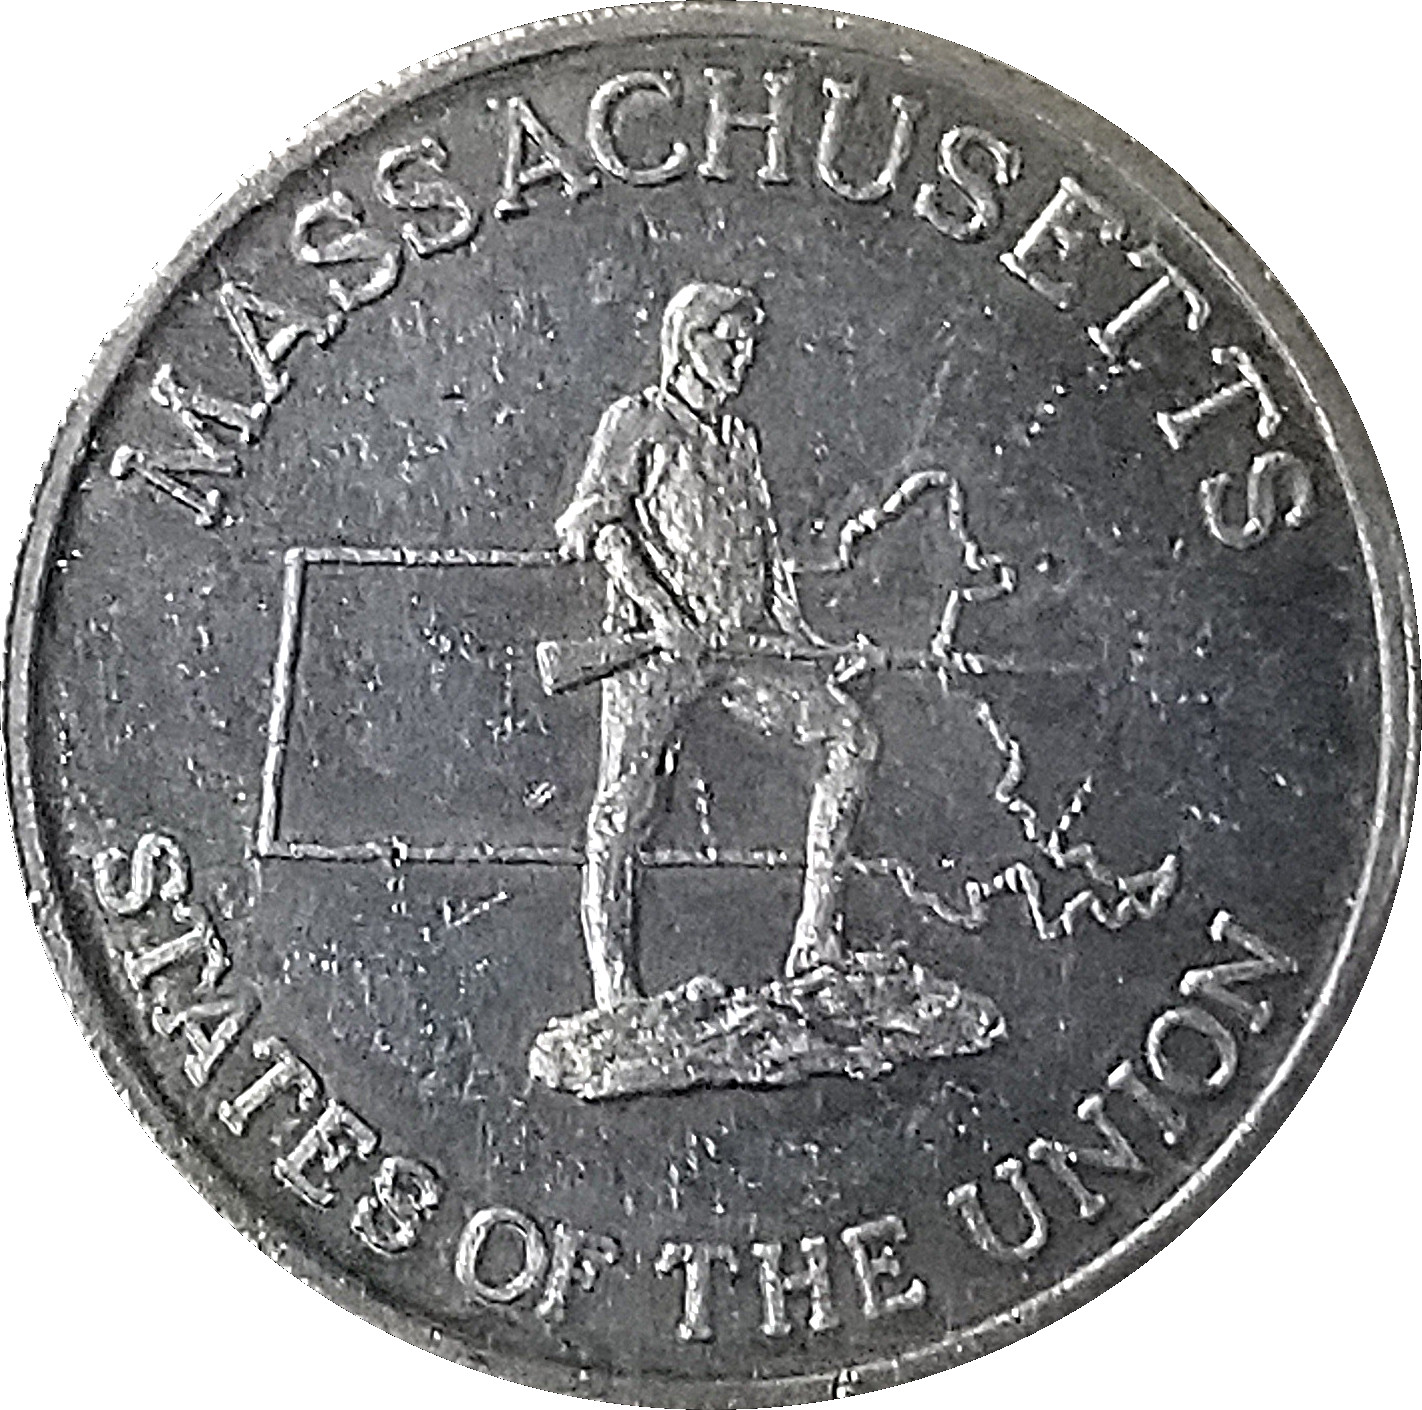 Virginia Shell Token Coin State of union